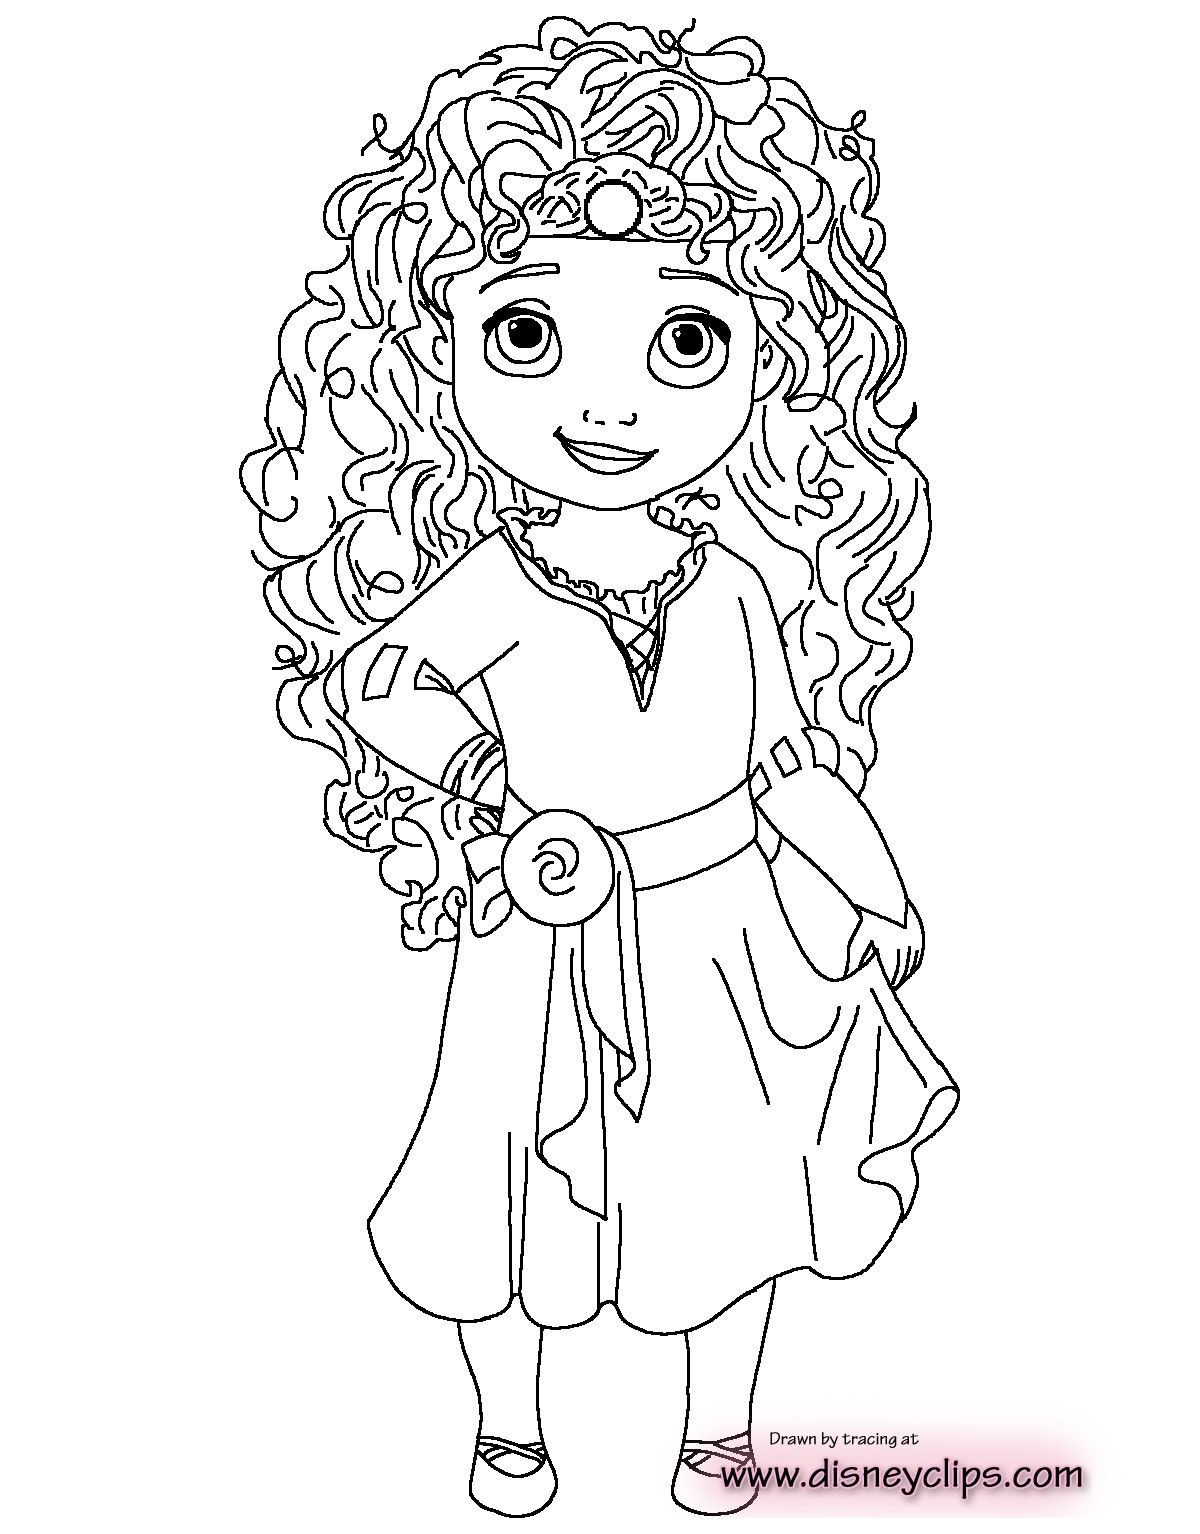 Baby Princess Coloring Page Through the thousand photos